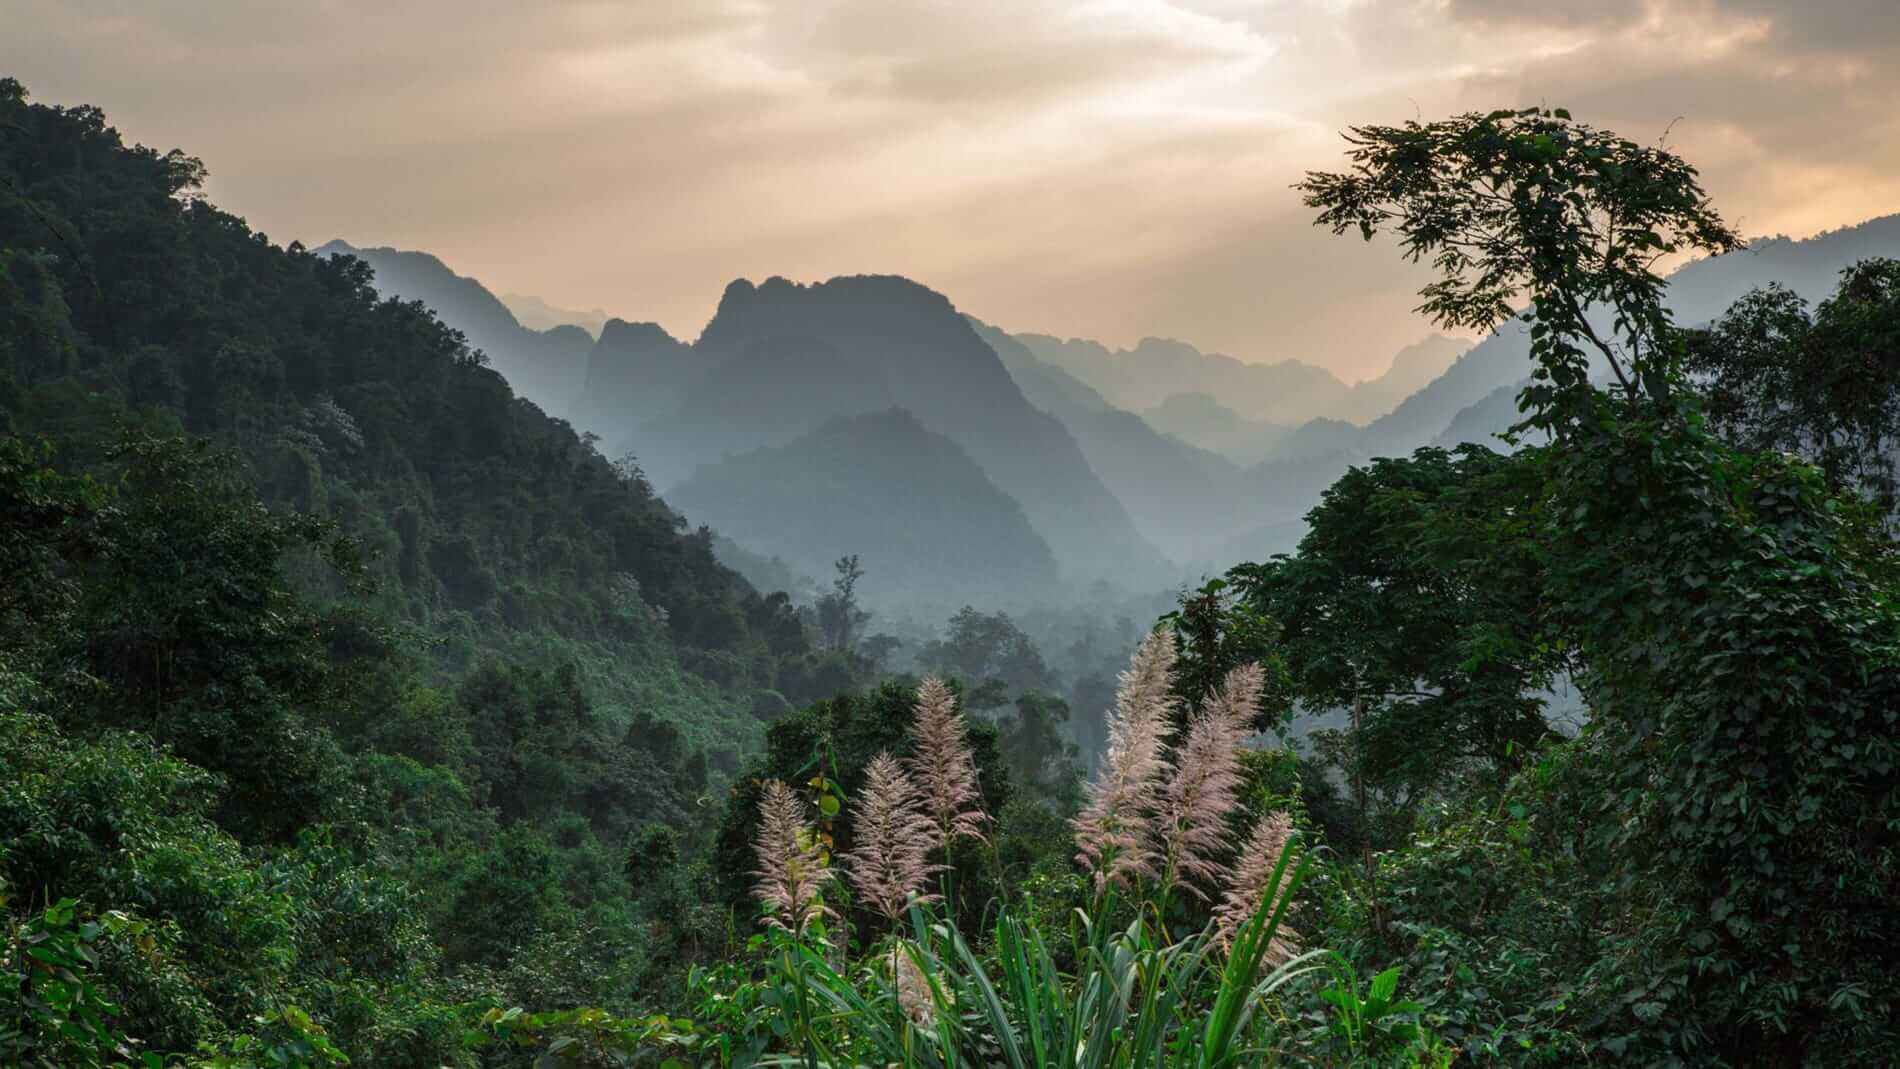 tropical jungle can be found at Phong Nha town